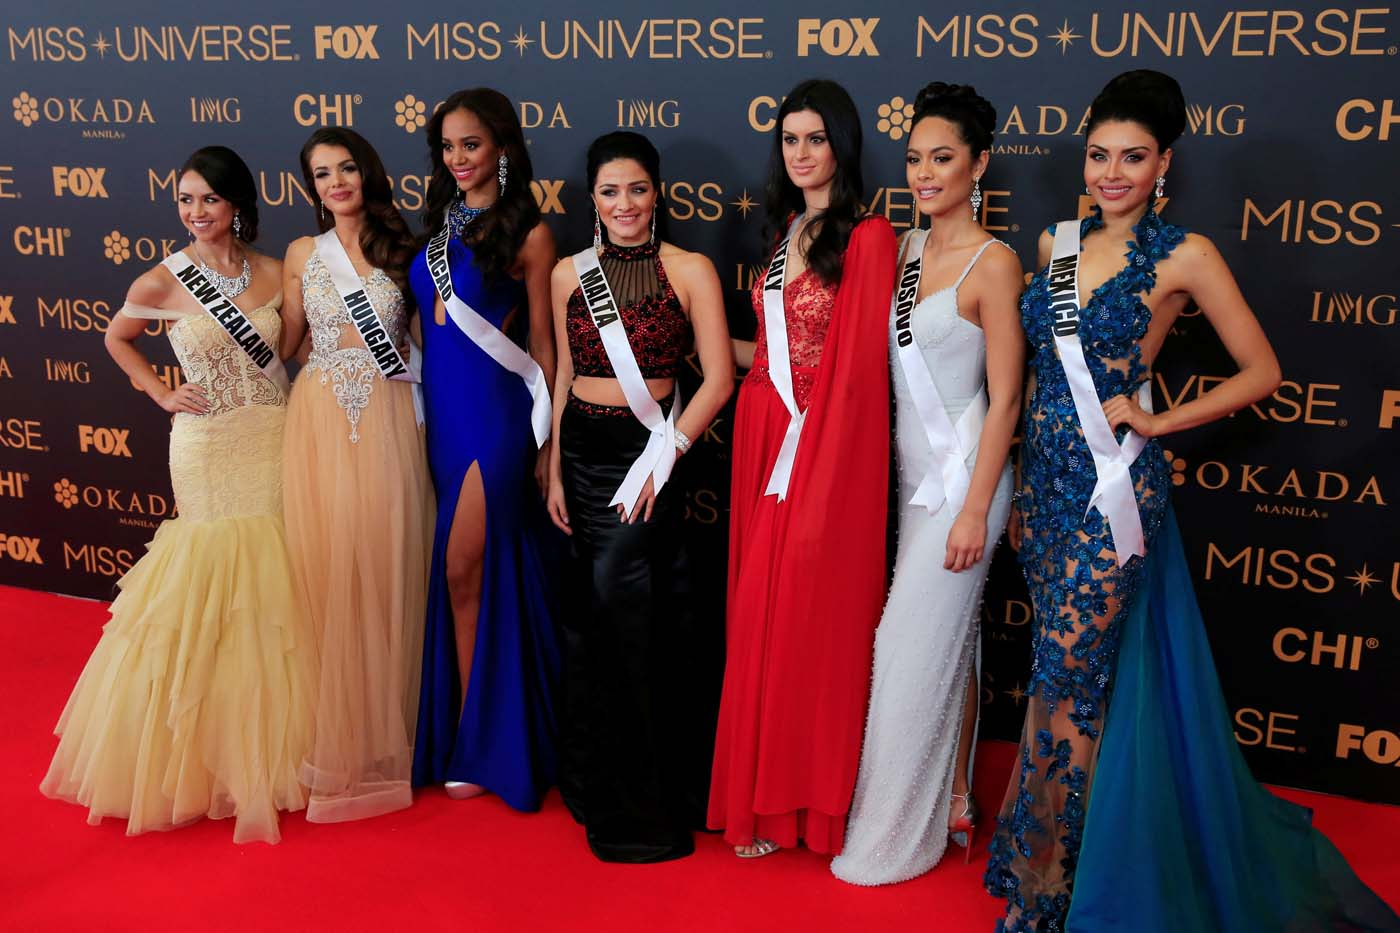 Miss Universe candidates pose for a picture during a red carpet inside a SMX convention in metro Manila, Philippines January 29, 2017. In Photo from L-R: Miss New Zealand Zoey Ivory, Miss Hungary Veronika Bodizs, Miss Curacao Chanelle de Lau, Miss Malta Martha Fenech, Miss Italy Sophia Sergio, Miss Kosovo Camila Barraza and Miss Mexico Kristal Silva. REUTERS/Romeo Ranoco